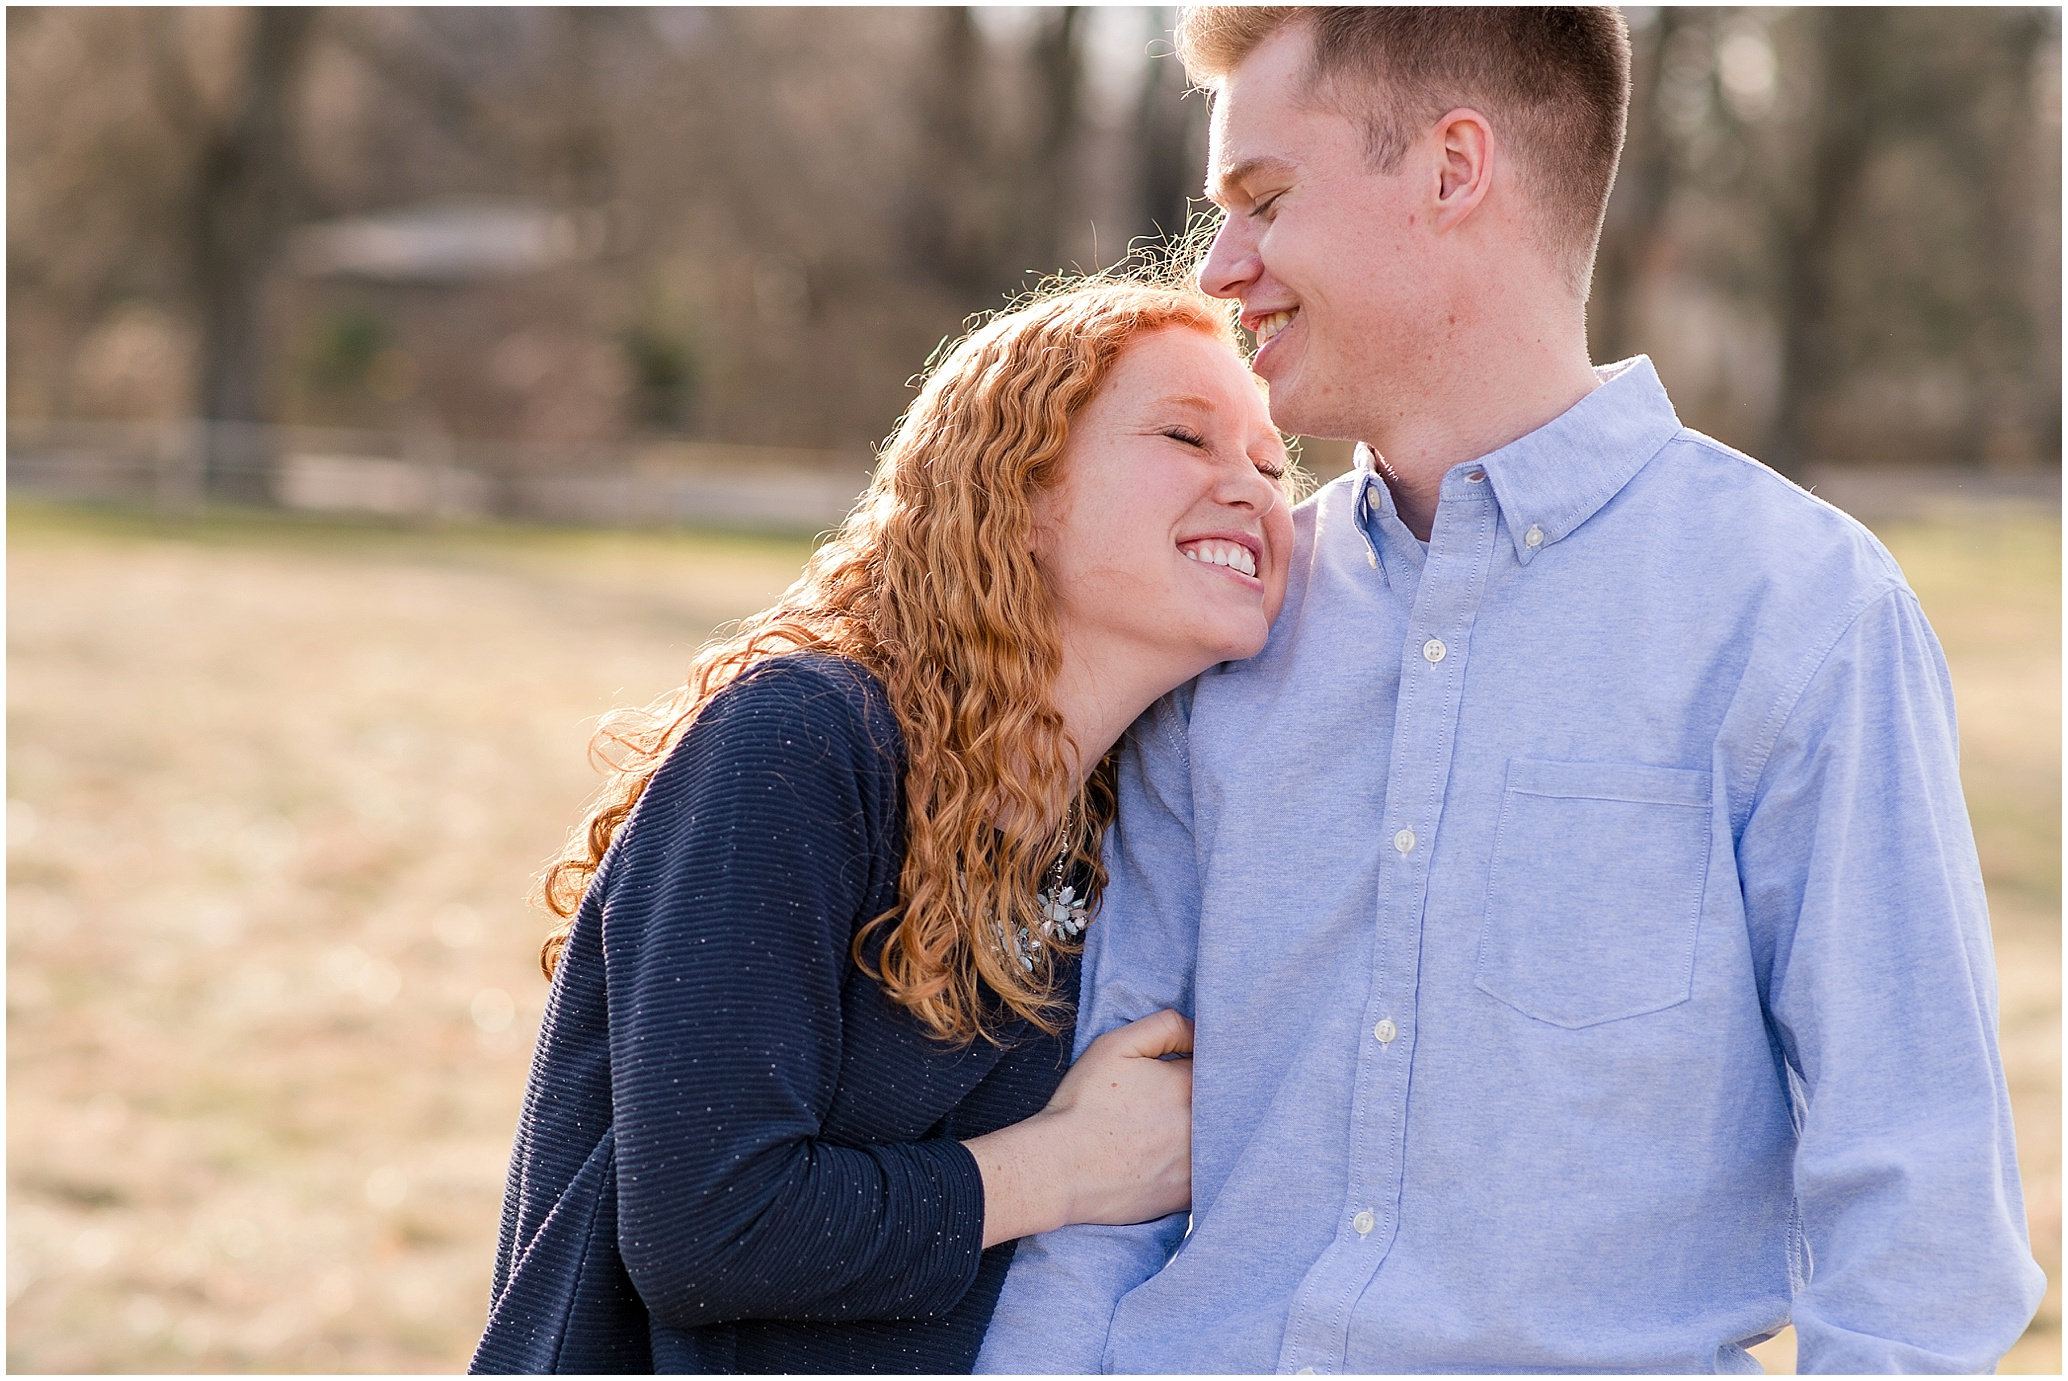 Hannah Leigh Photography State College, PA Engagement Session_3320.jpg